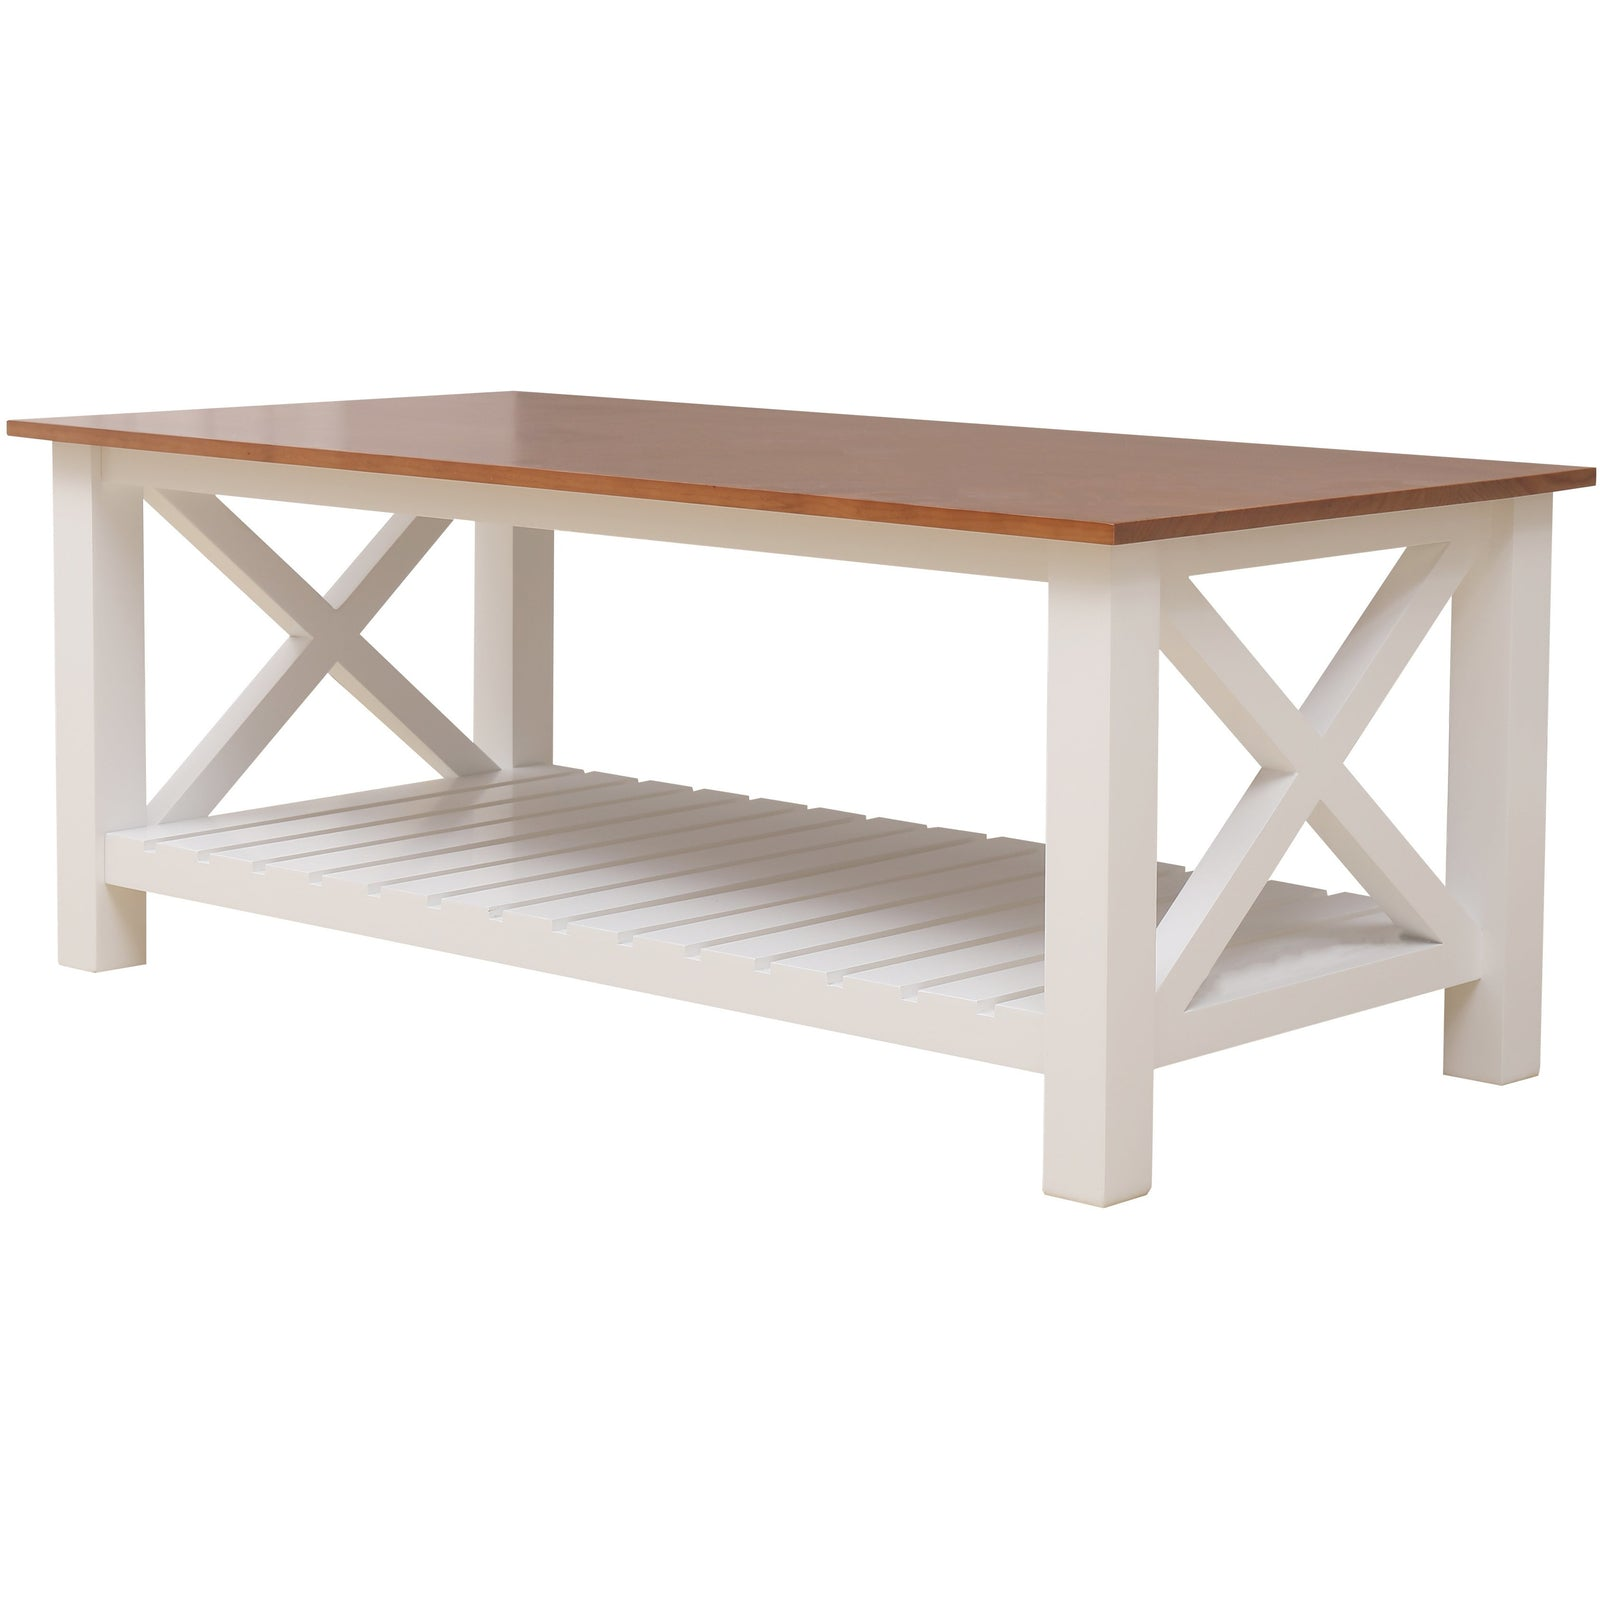 Wood Rustic Vintage Coffee Table Cocktail Table for Living Room With Shelf BH30005856